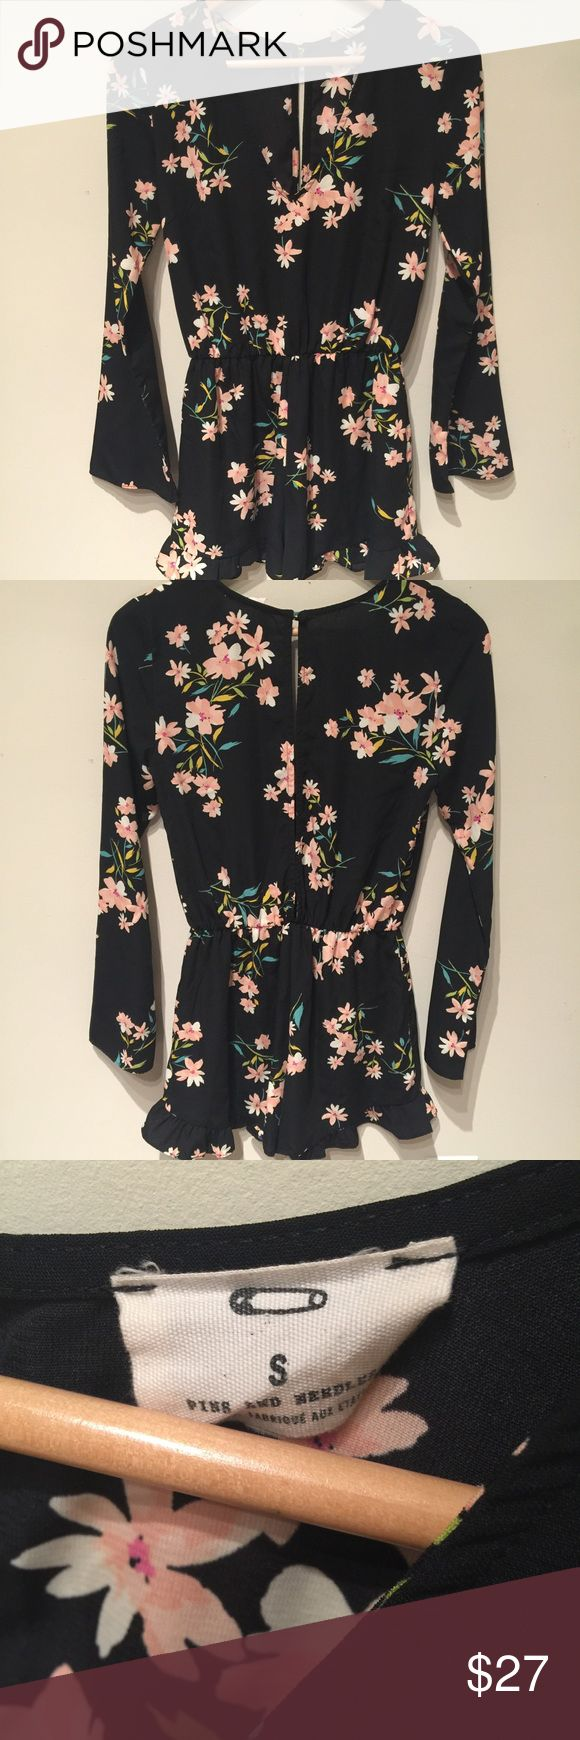 Pins and Needles floral jumper Urban Outfitters  Pins and Needles long sleeve floral jumper  Great condition  Super cute!  Size S  Key hole back with button Urban Outfitters Dresses Mini